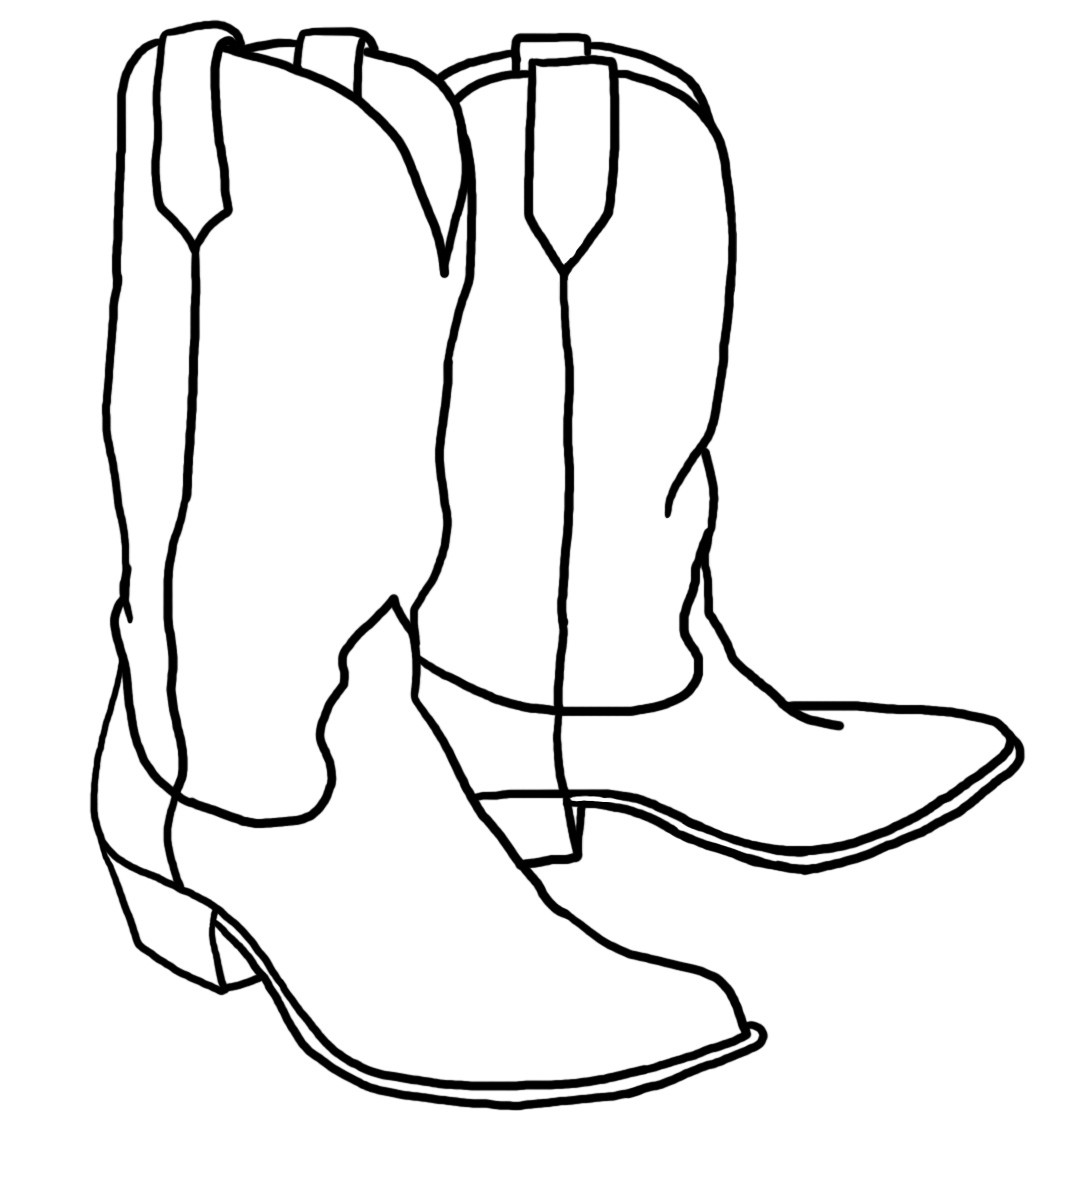 Cowboy boots black and. Boot clipart sketch